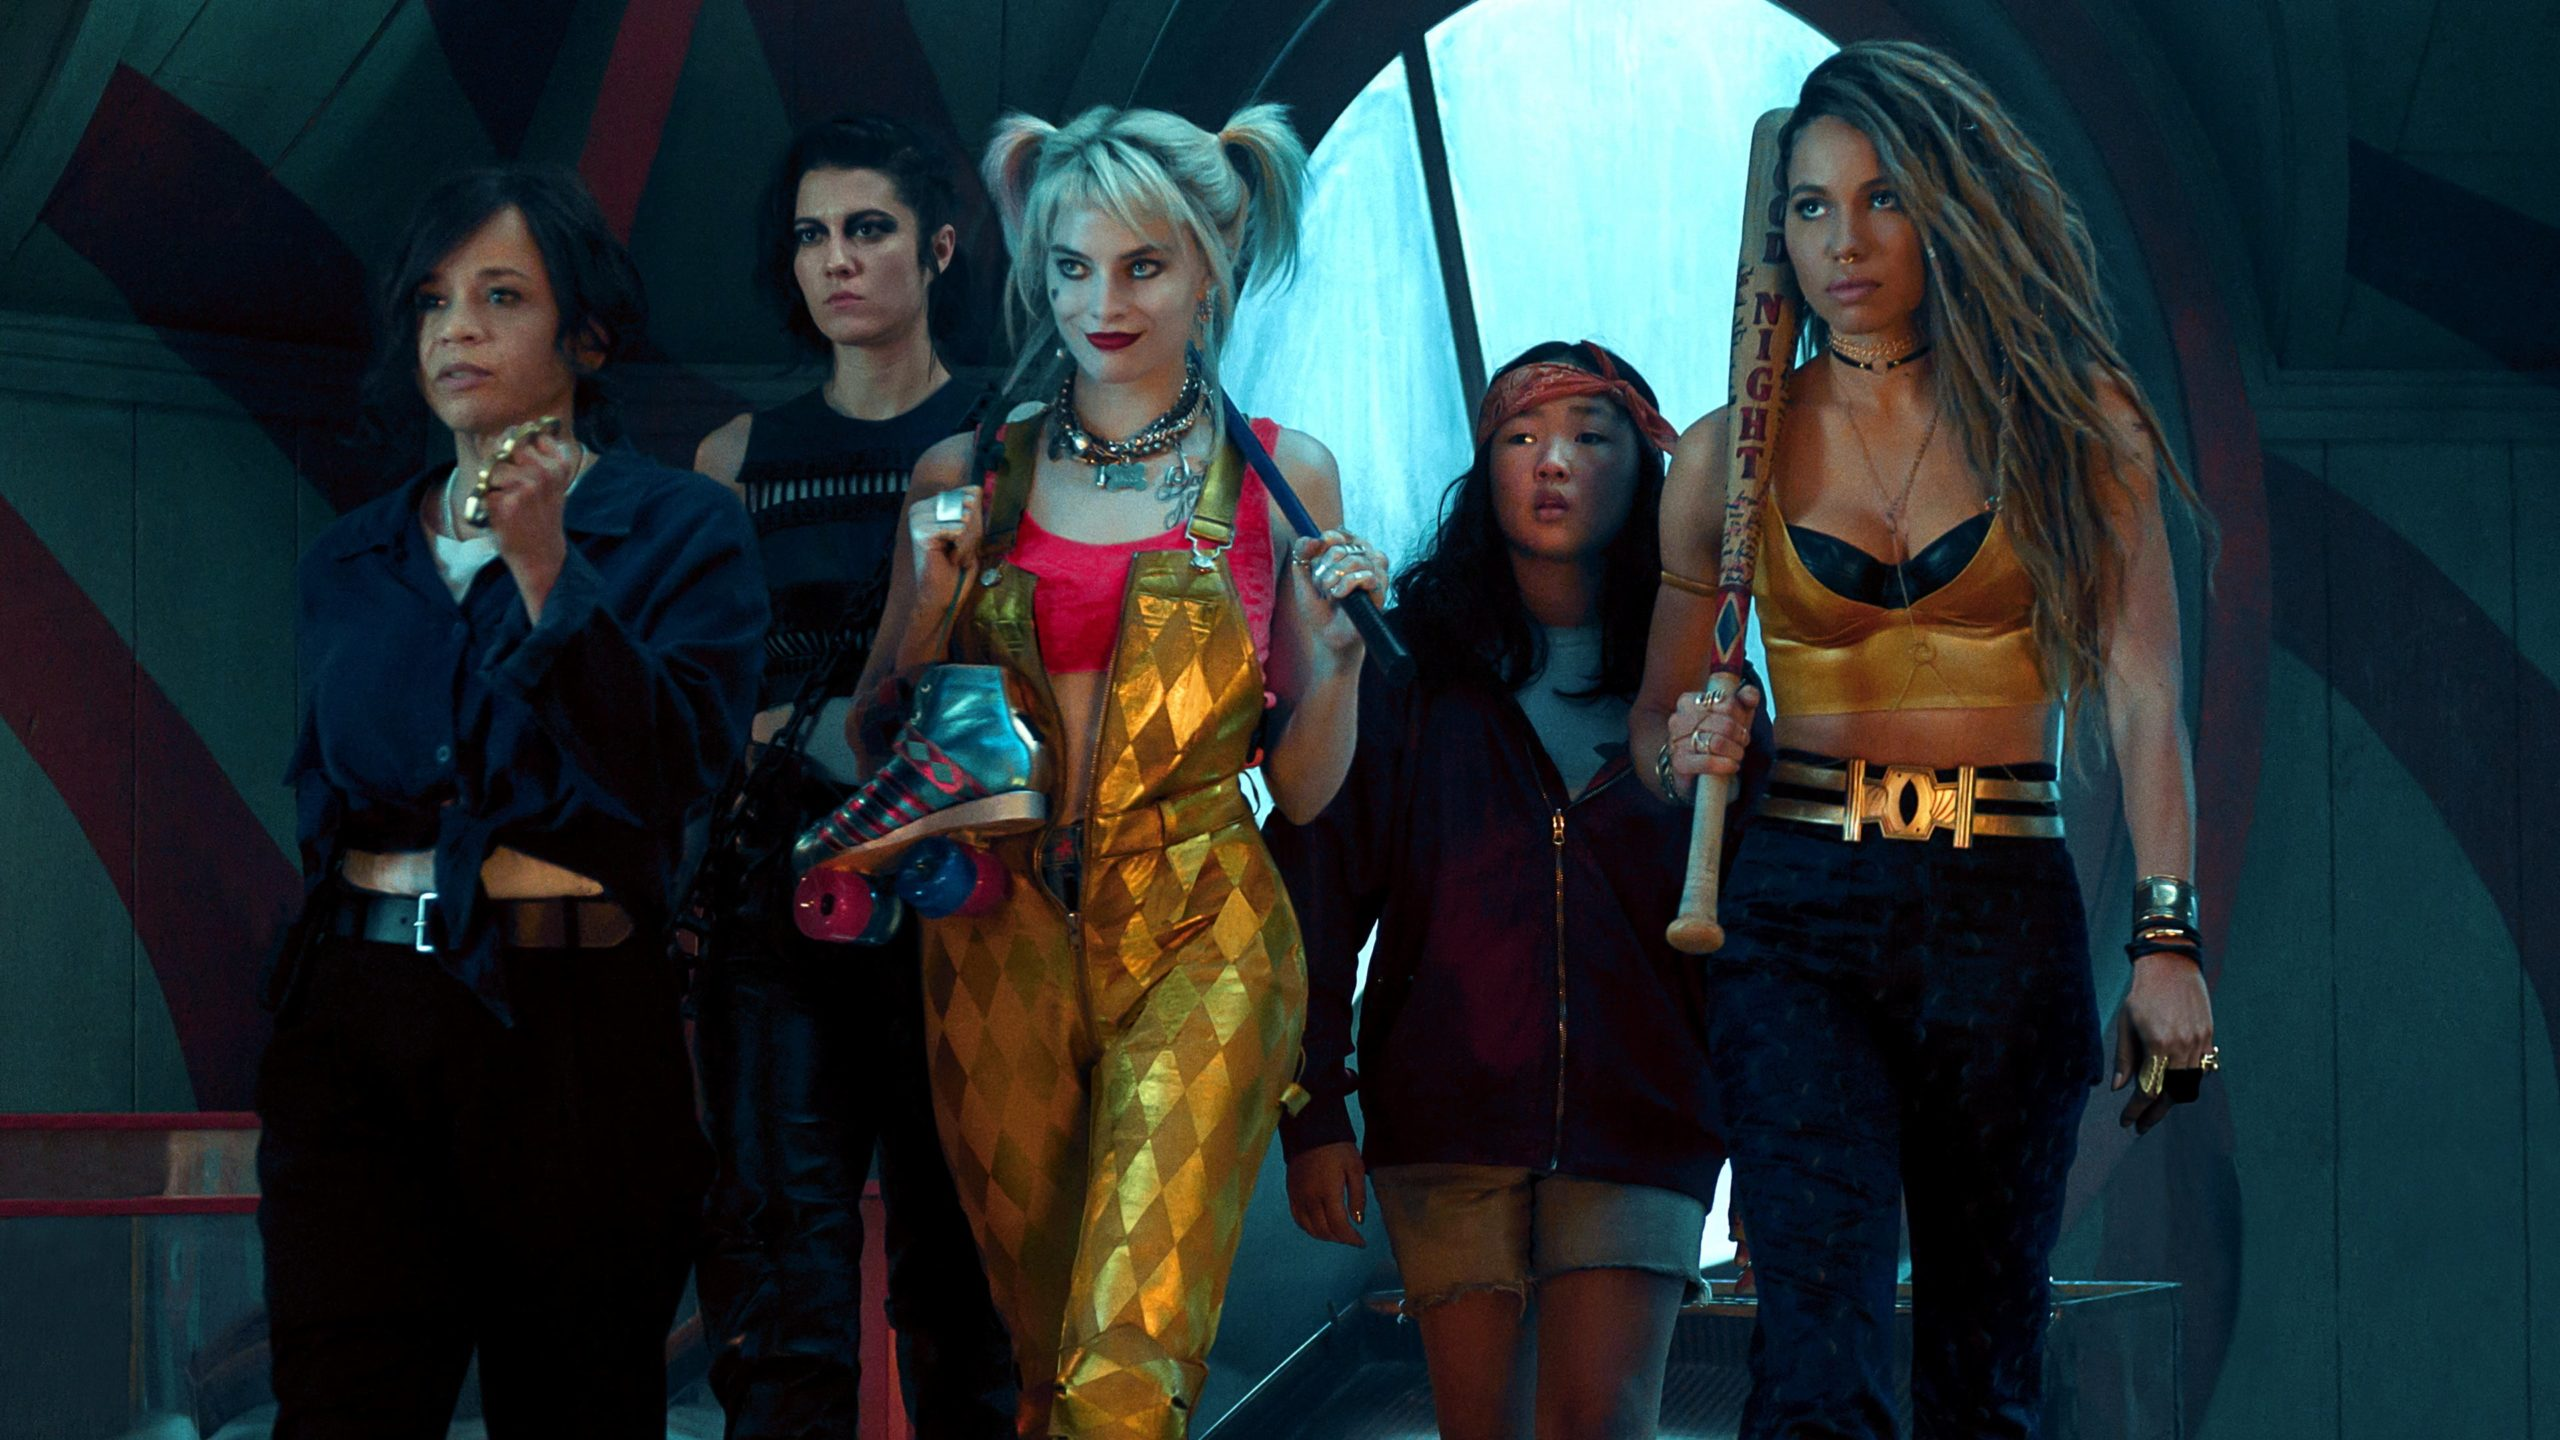 Birds of Prey Review movie Harley Quinn Margot Robbie 2 box office